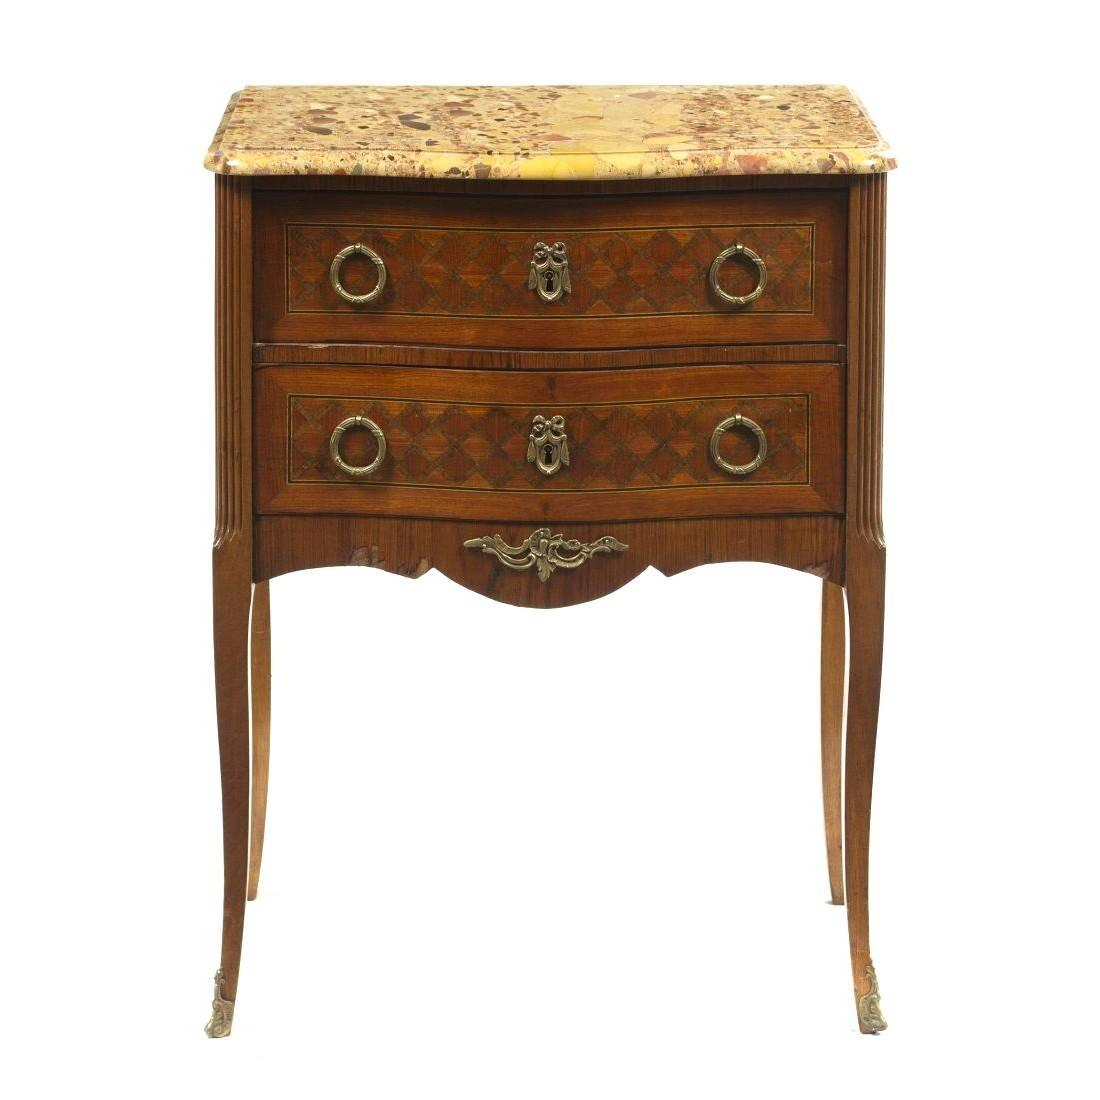 Antique French Parquetry and Marble Top Side Table